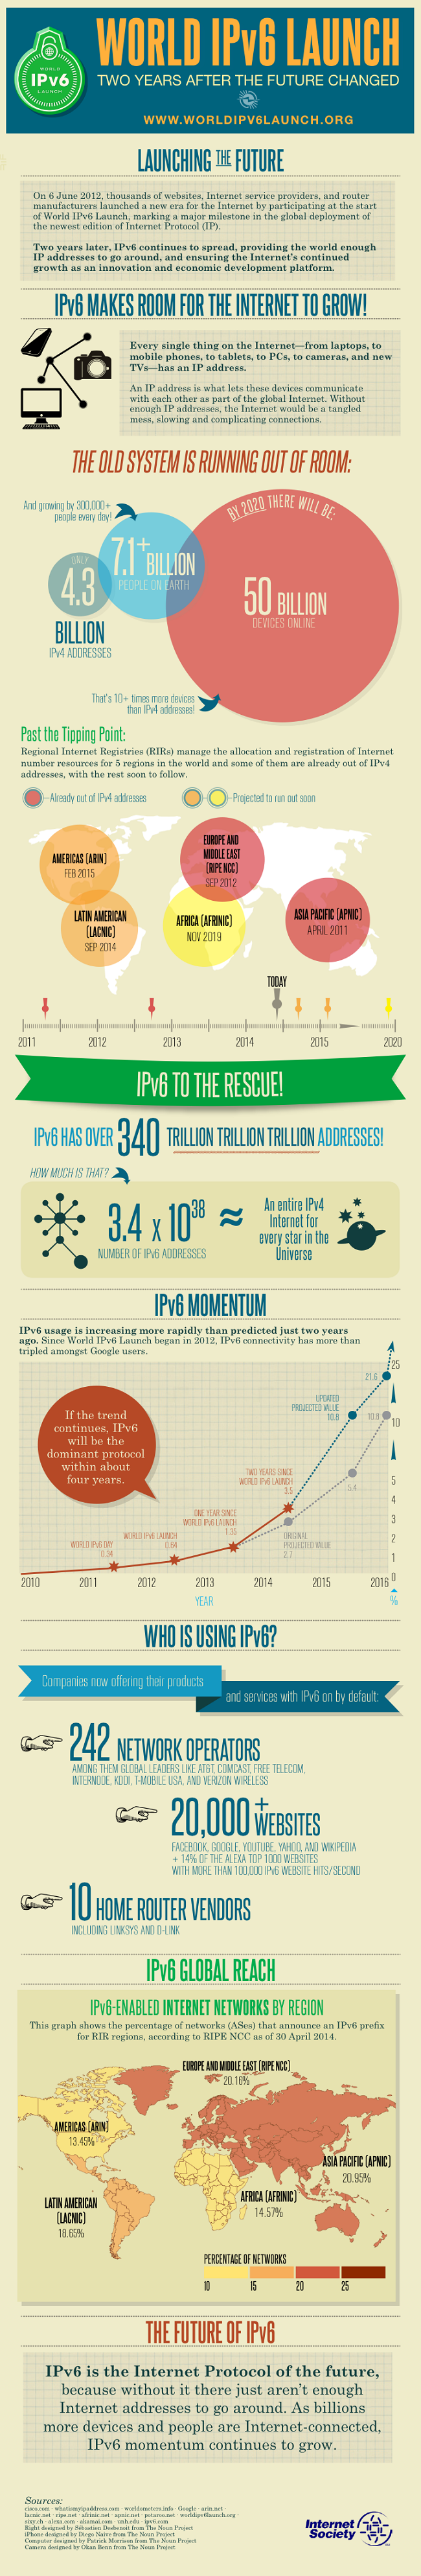 Infographic explaining IPv6